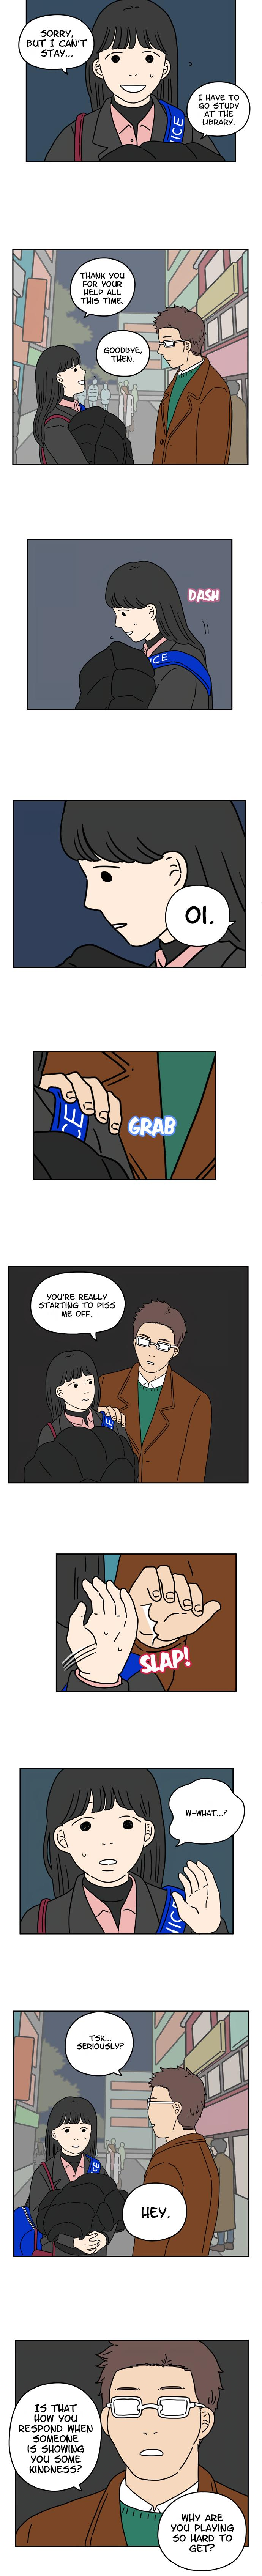 The Year We Turned 29 Chapter 31: I Fall In Love Too Easily (1/2) page 6 - Mangakakalots.com